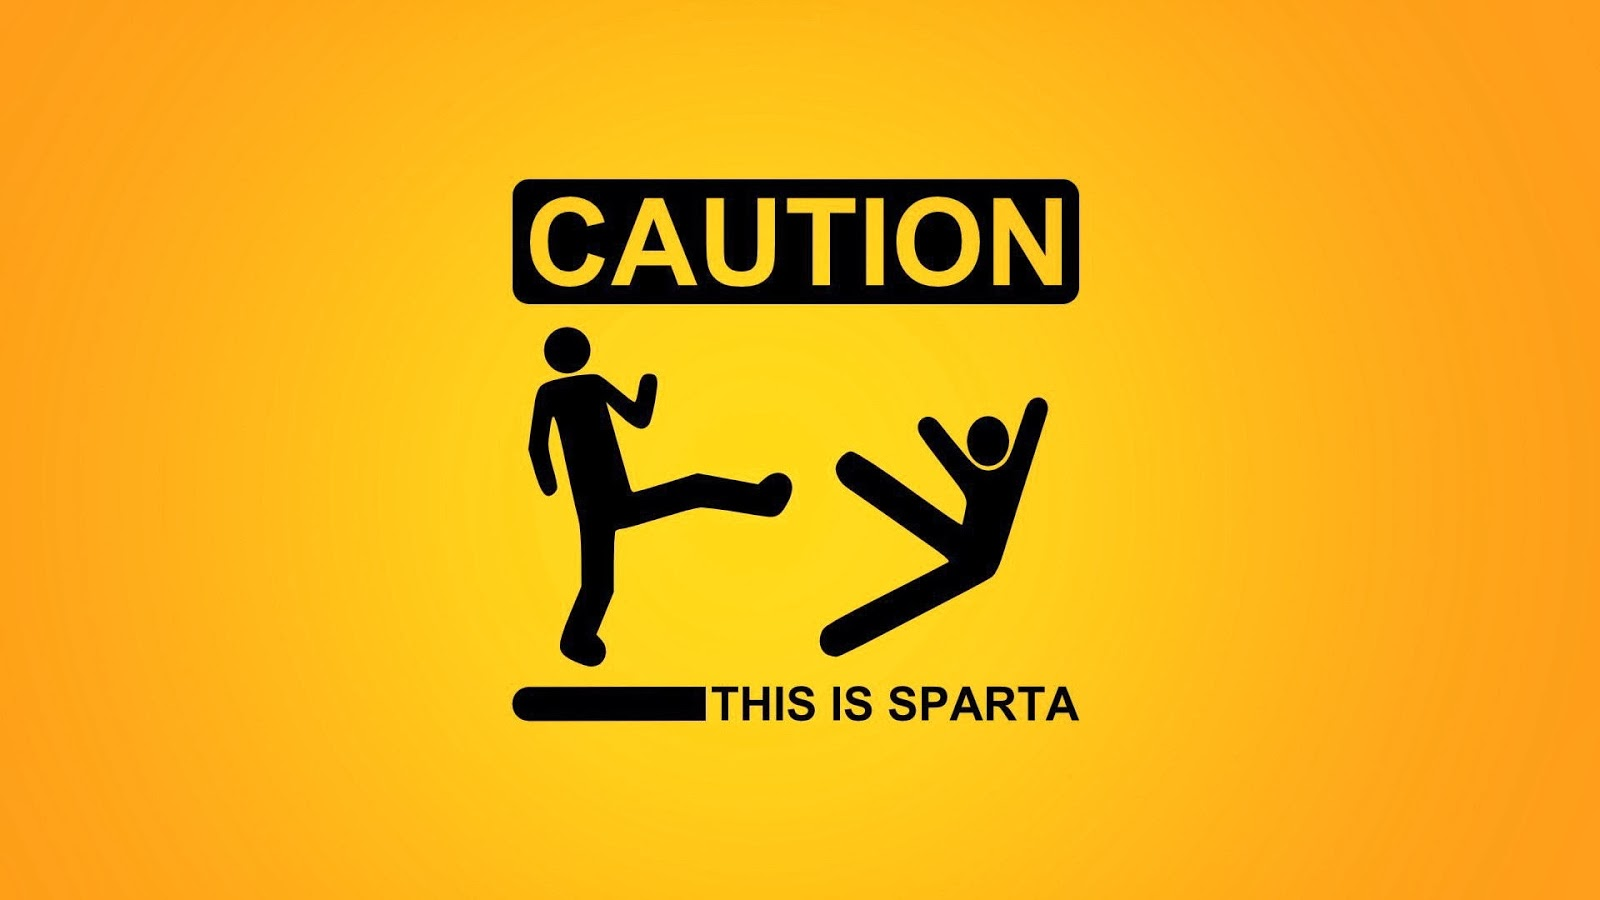 Fotografias Comicas - This is Sparta!